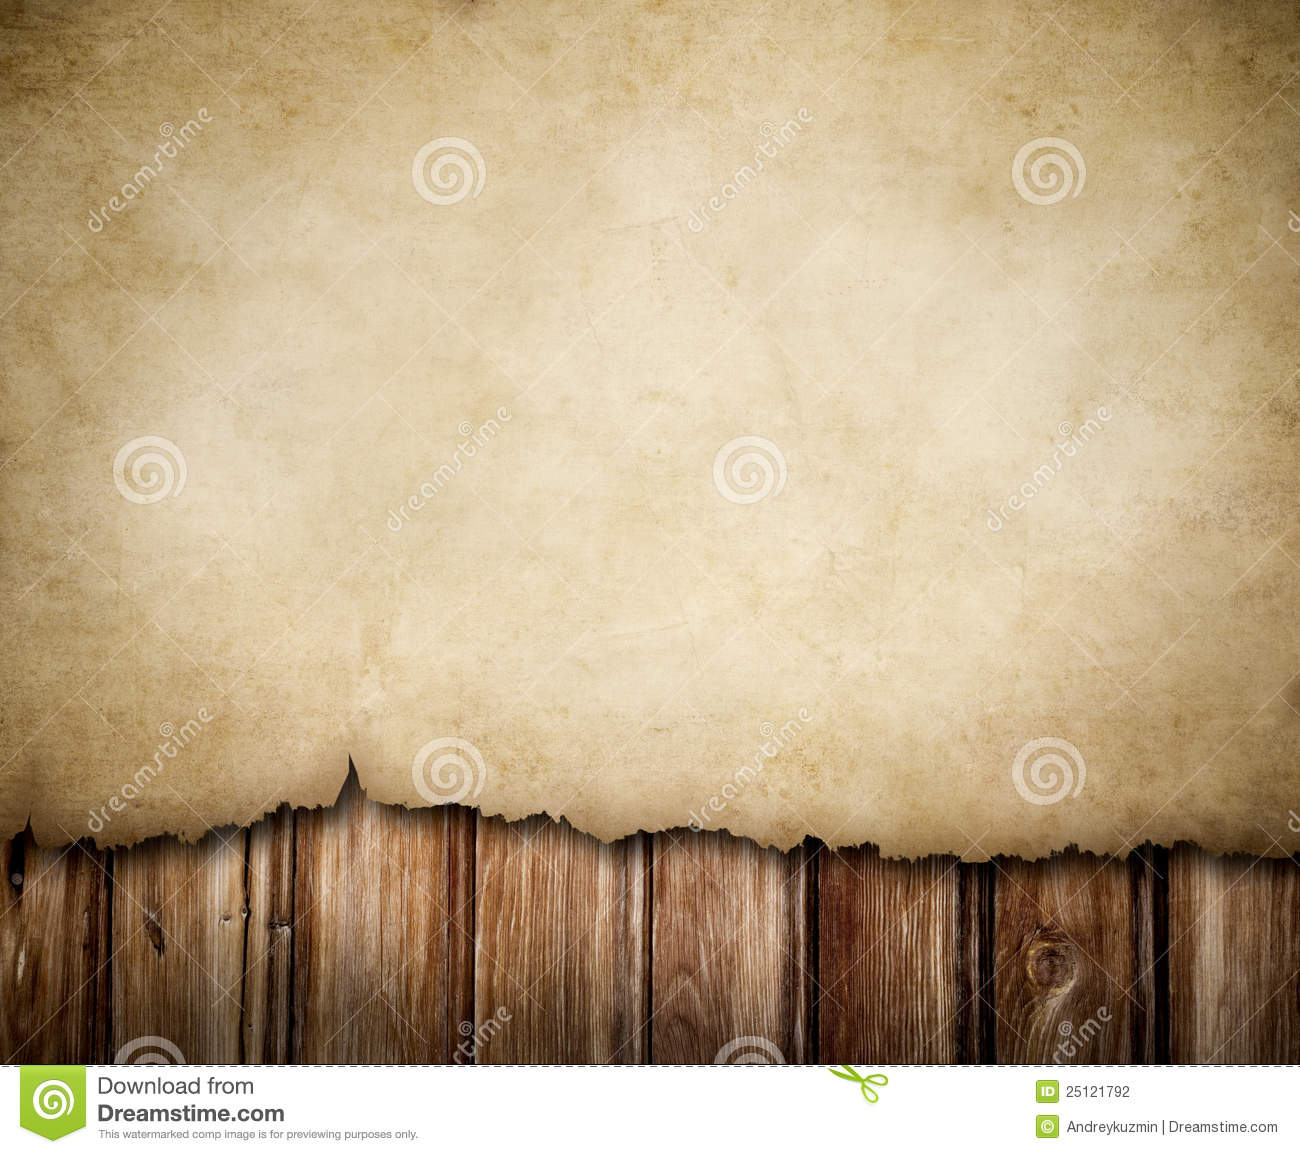 Grunge Paper Notice On Wooden Wall Background Stock ...